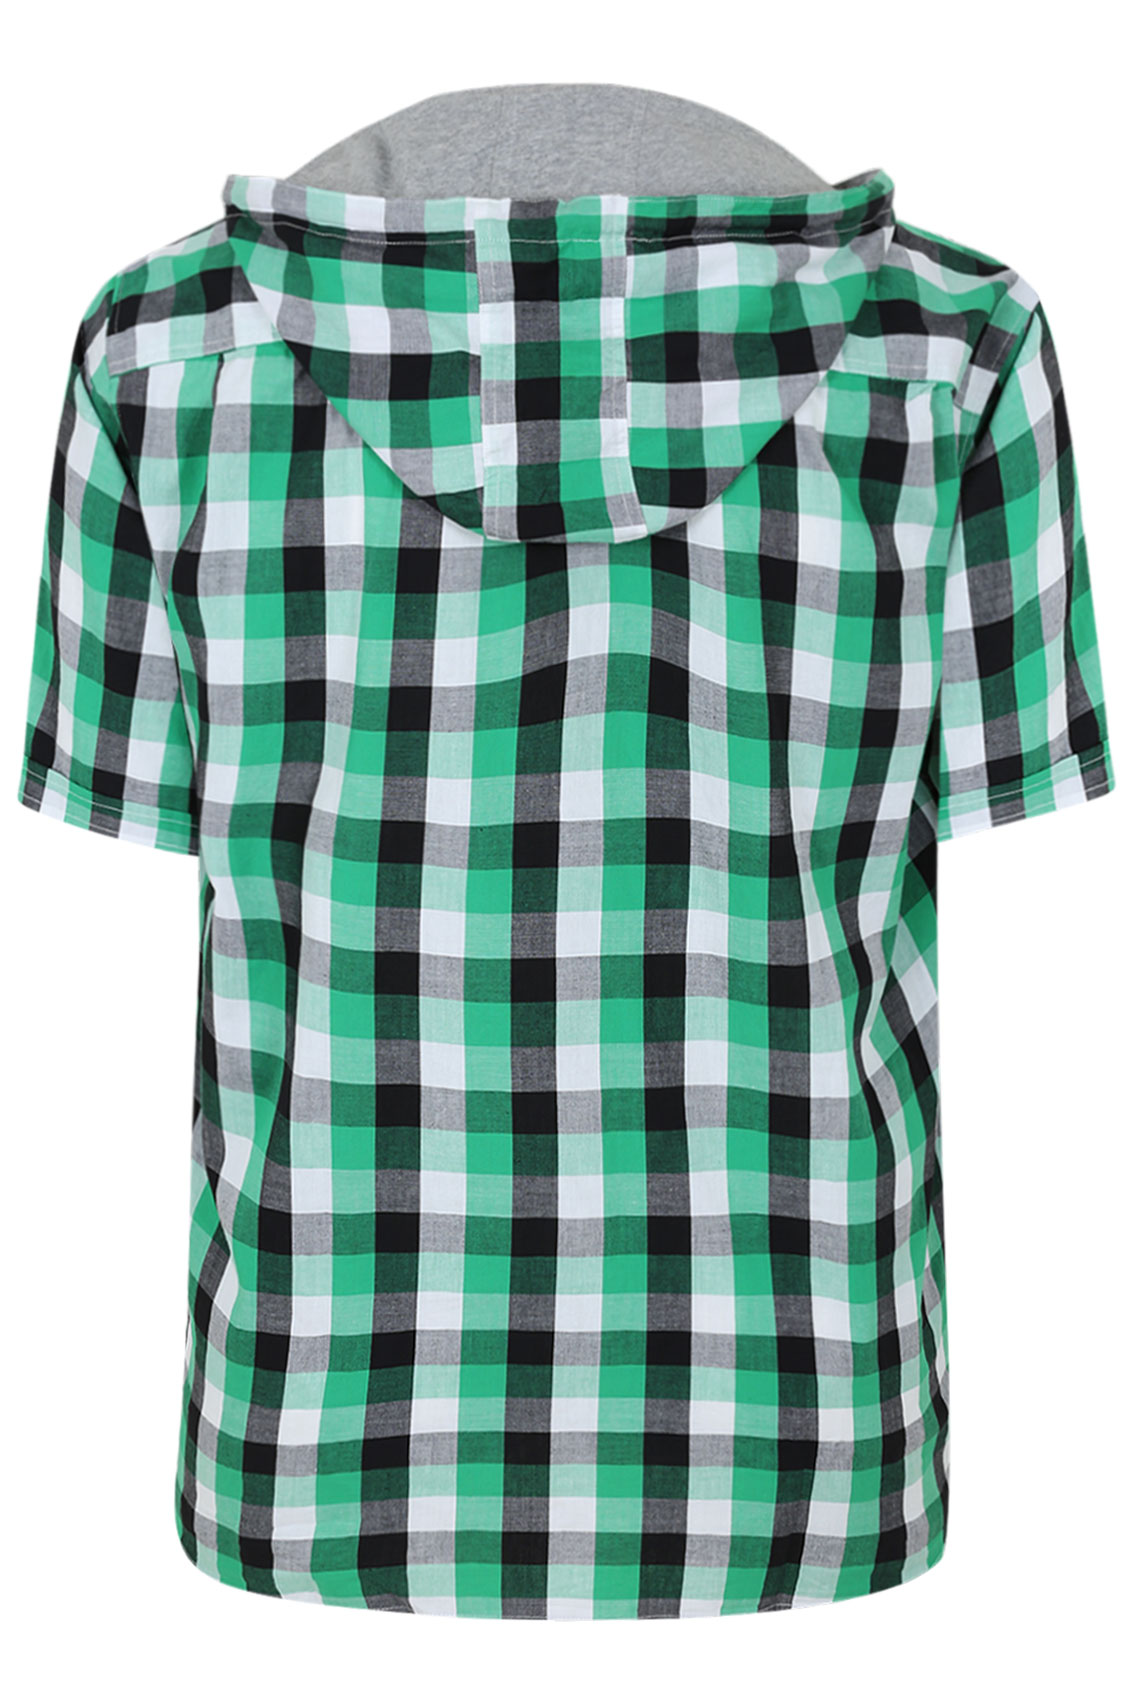 Green, Black And White Short Sleeve Check Shirt With Hood Extra ...